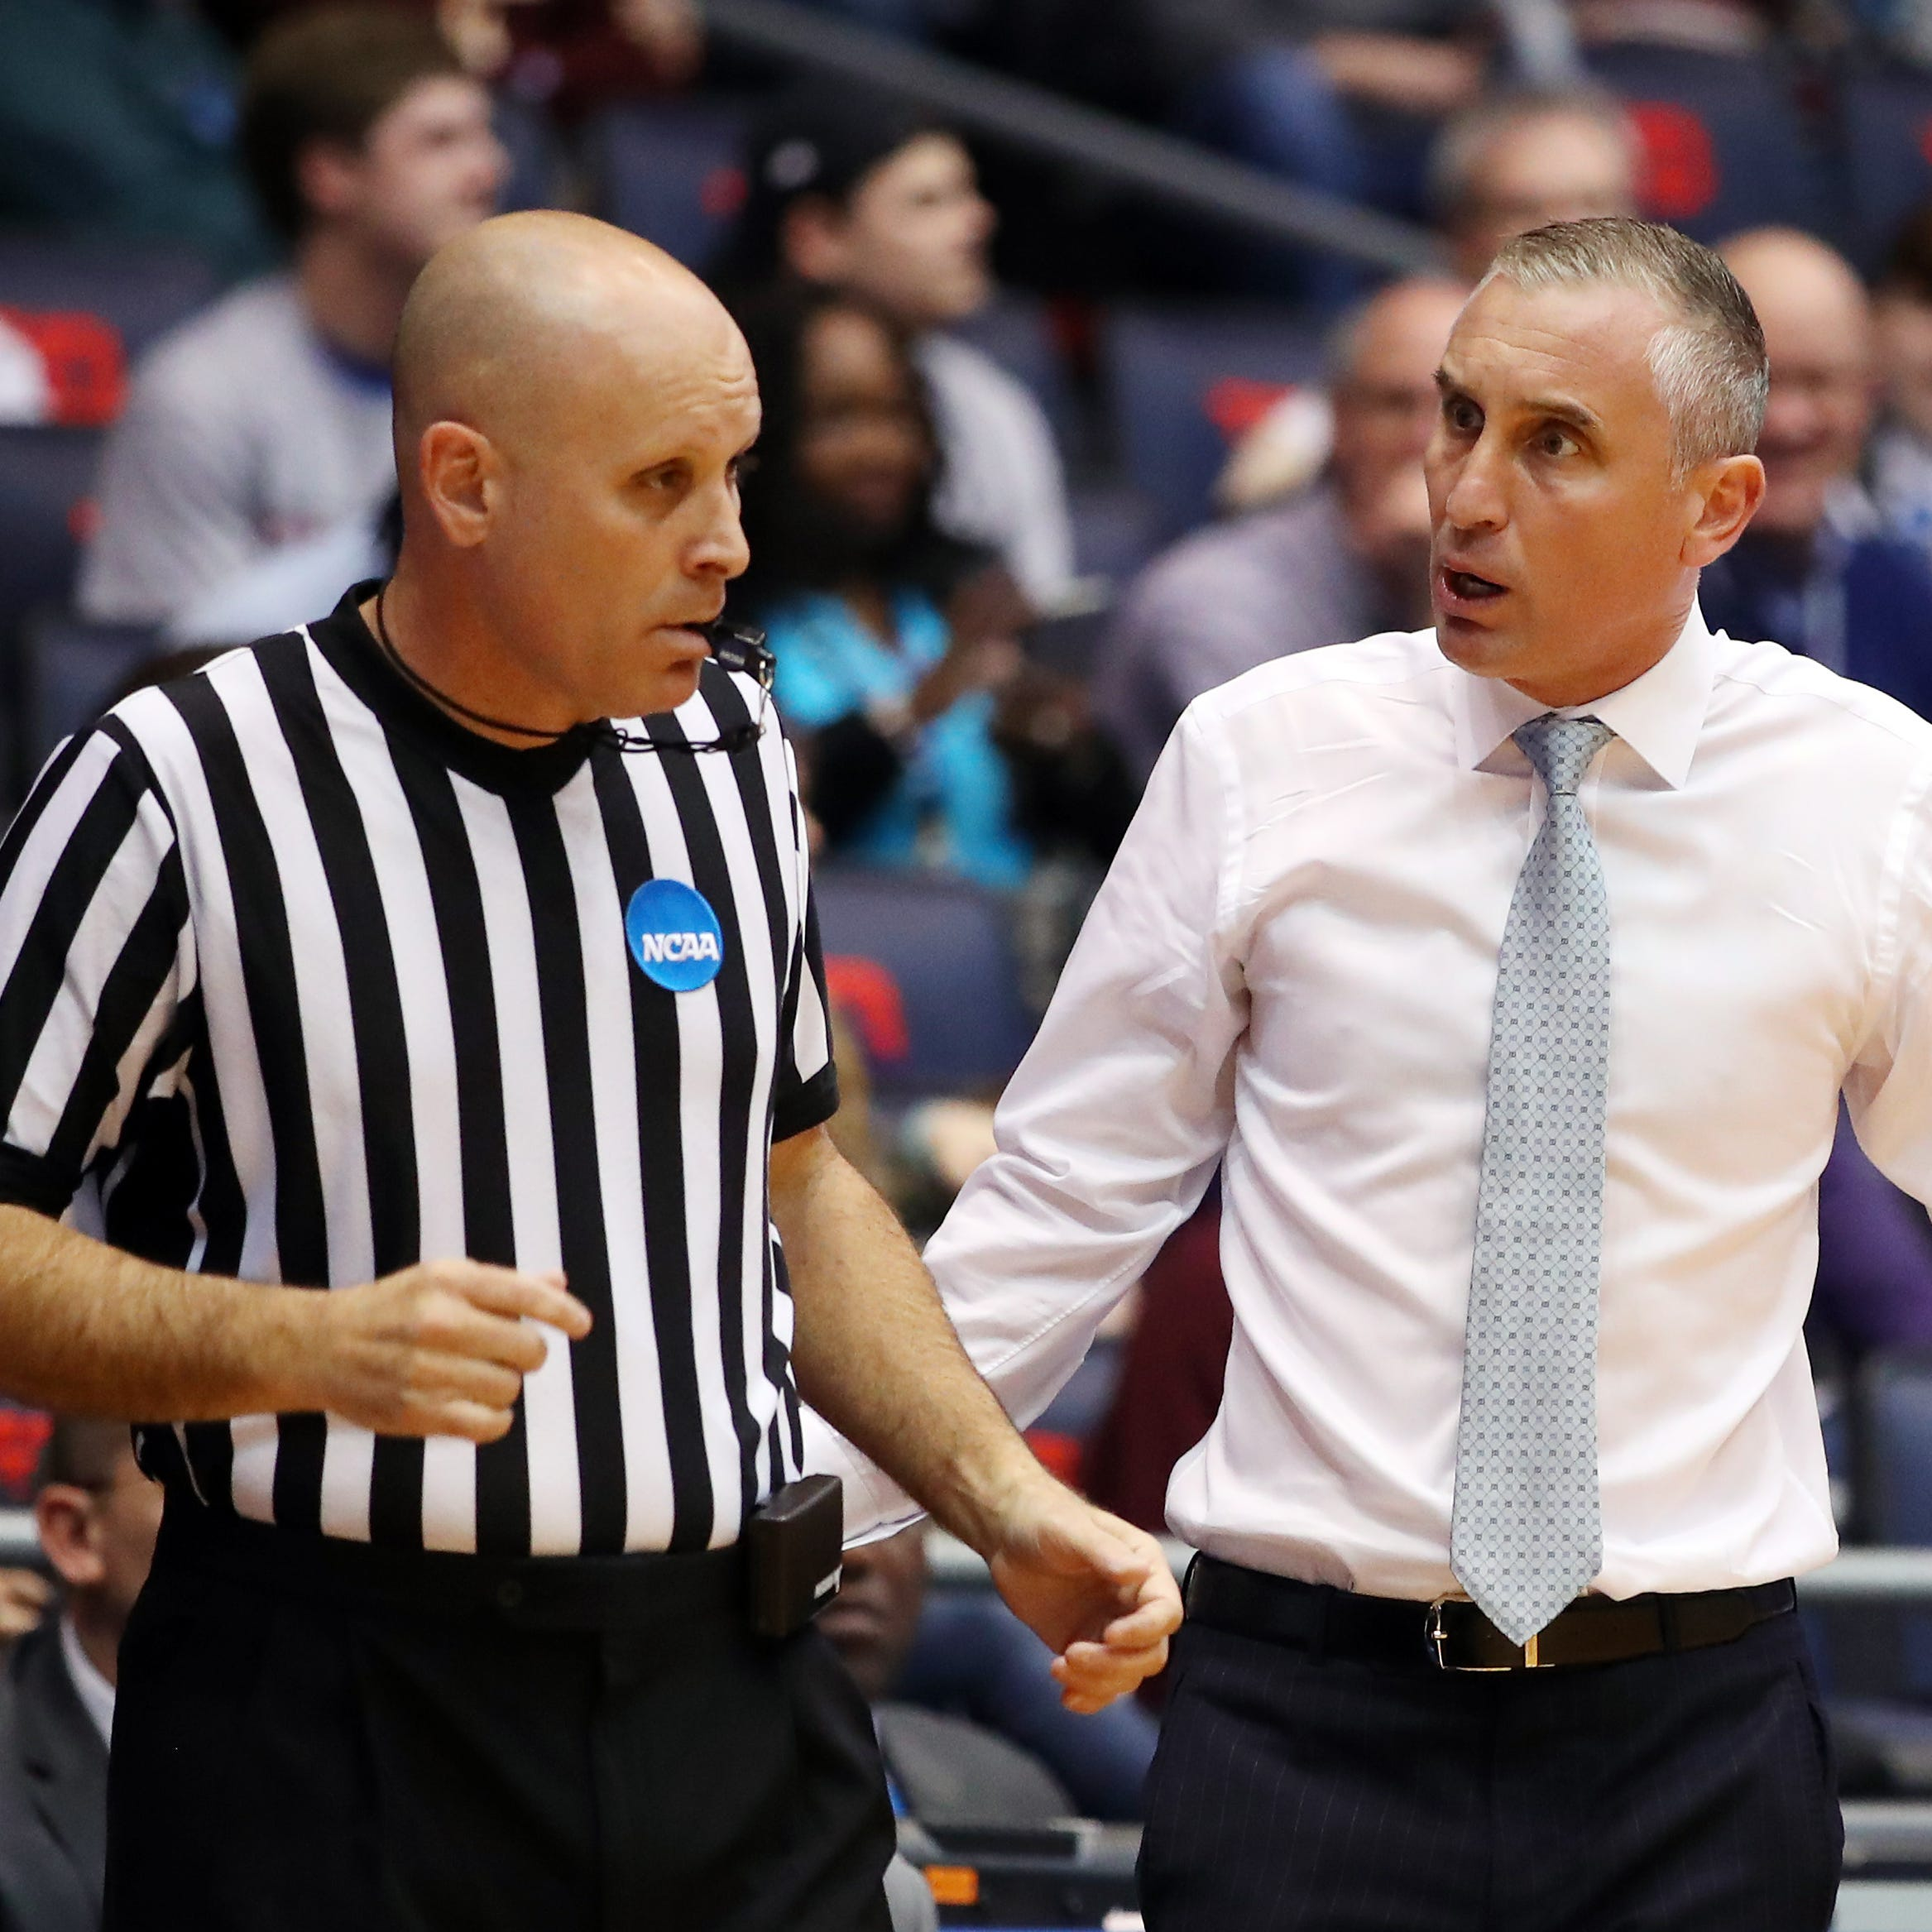 ASU wins, but is Bobby Hurley a marked man? TruTV seems to think so